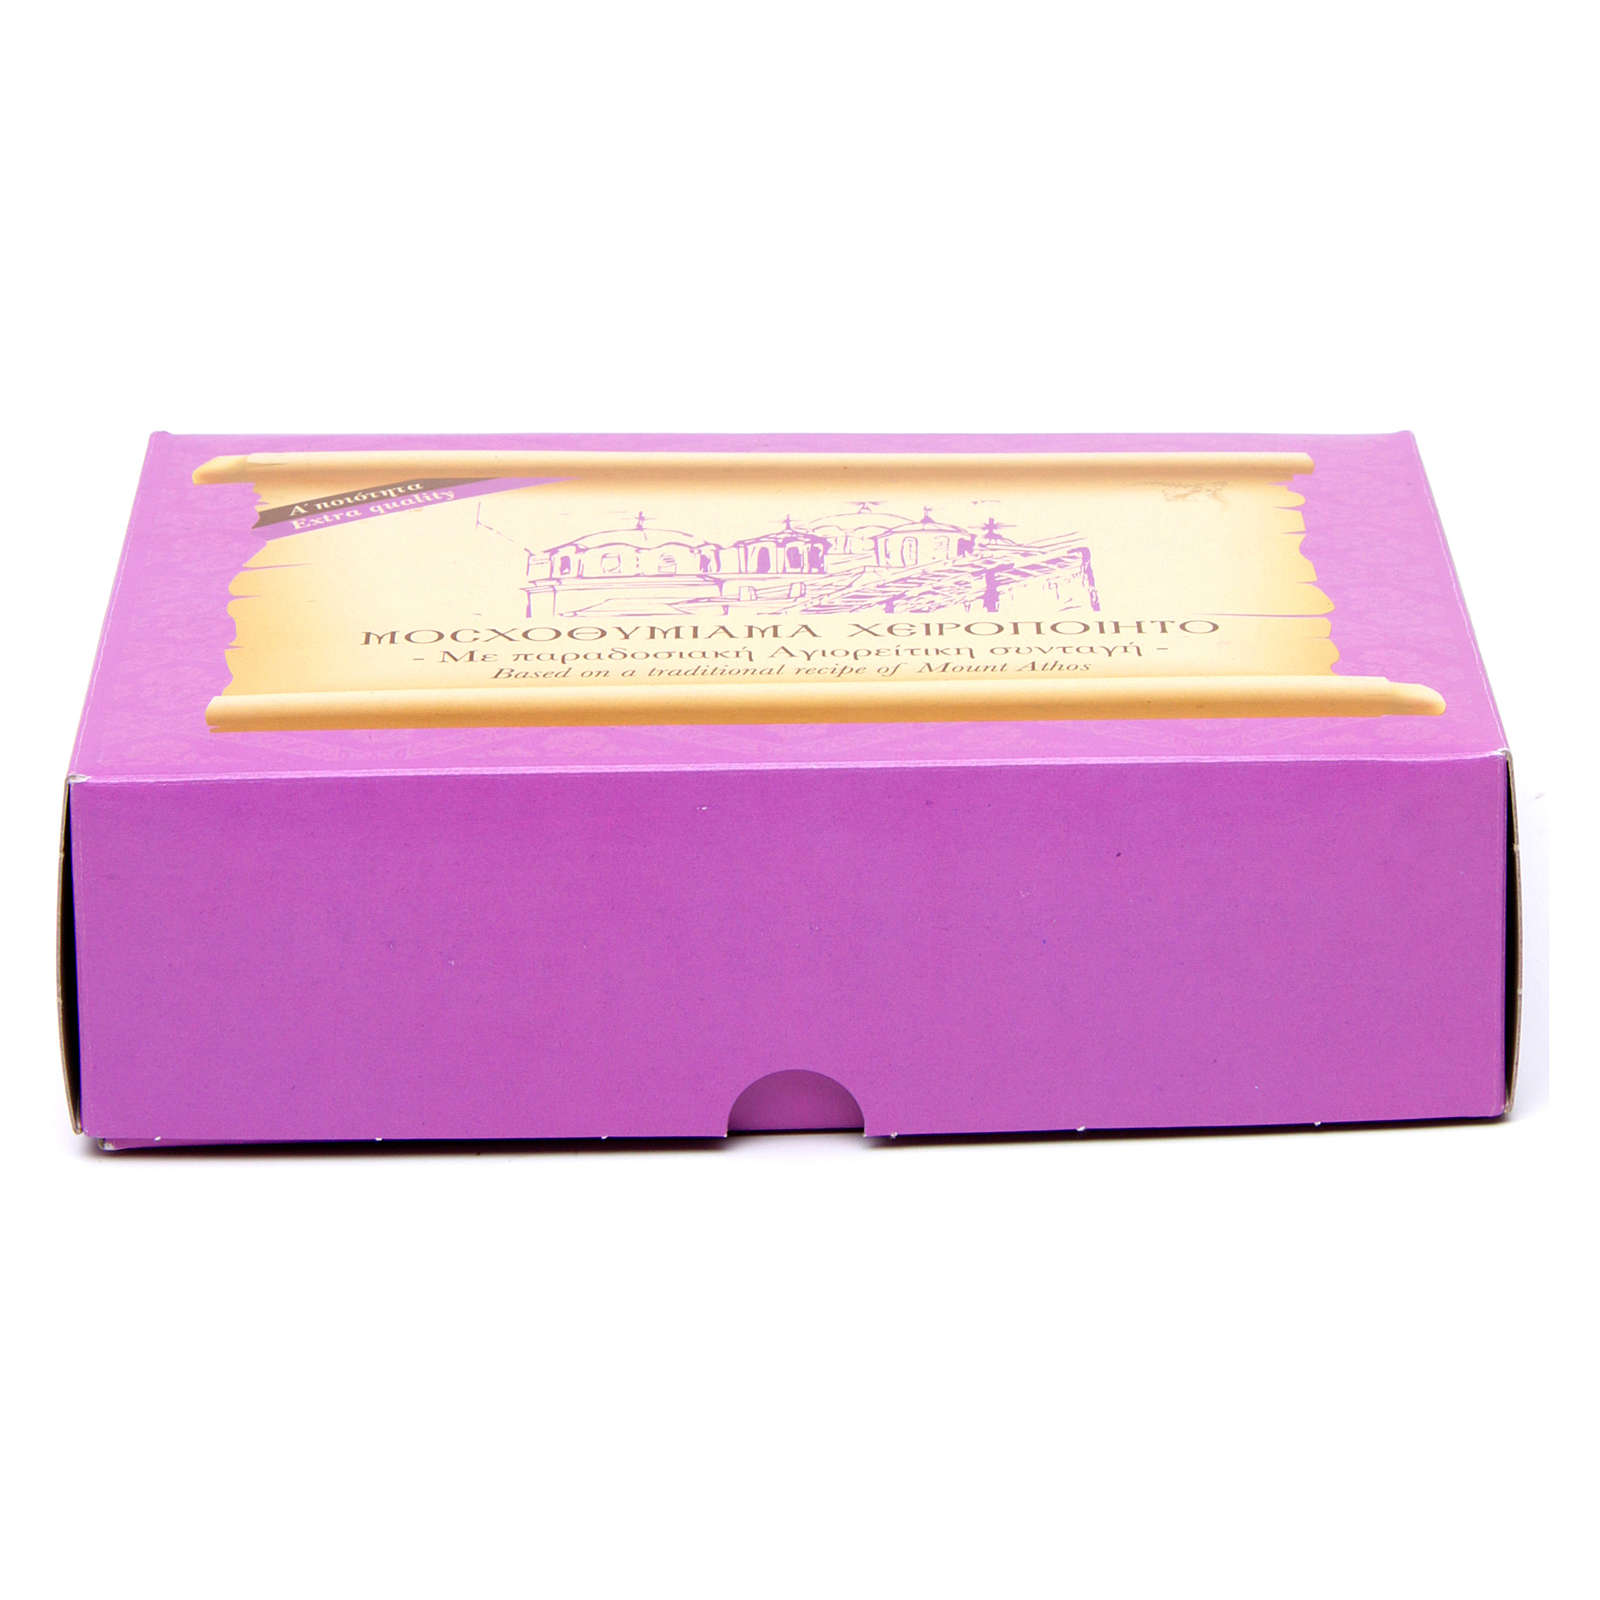 Cherubino perfumed Greek incense 1 kg 3